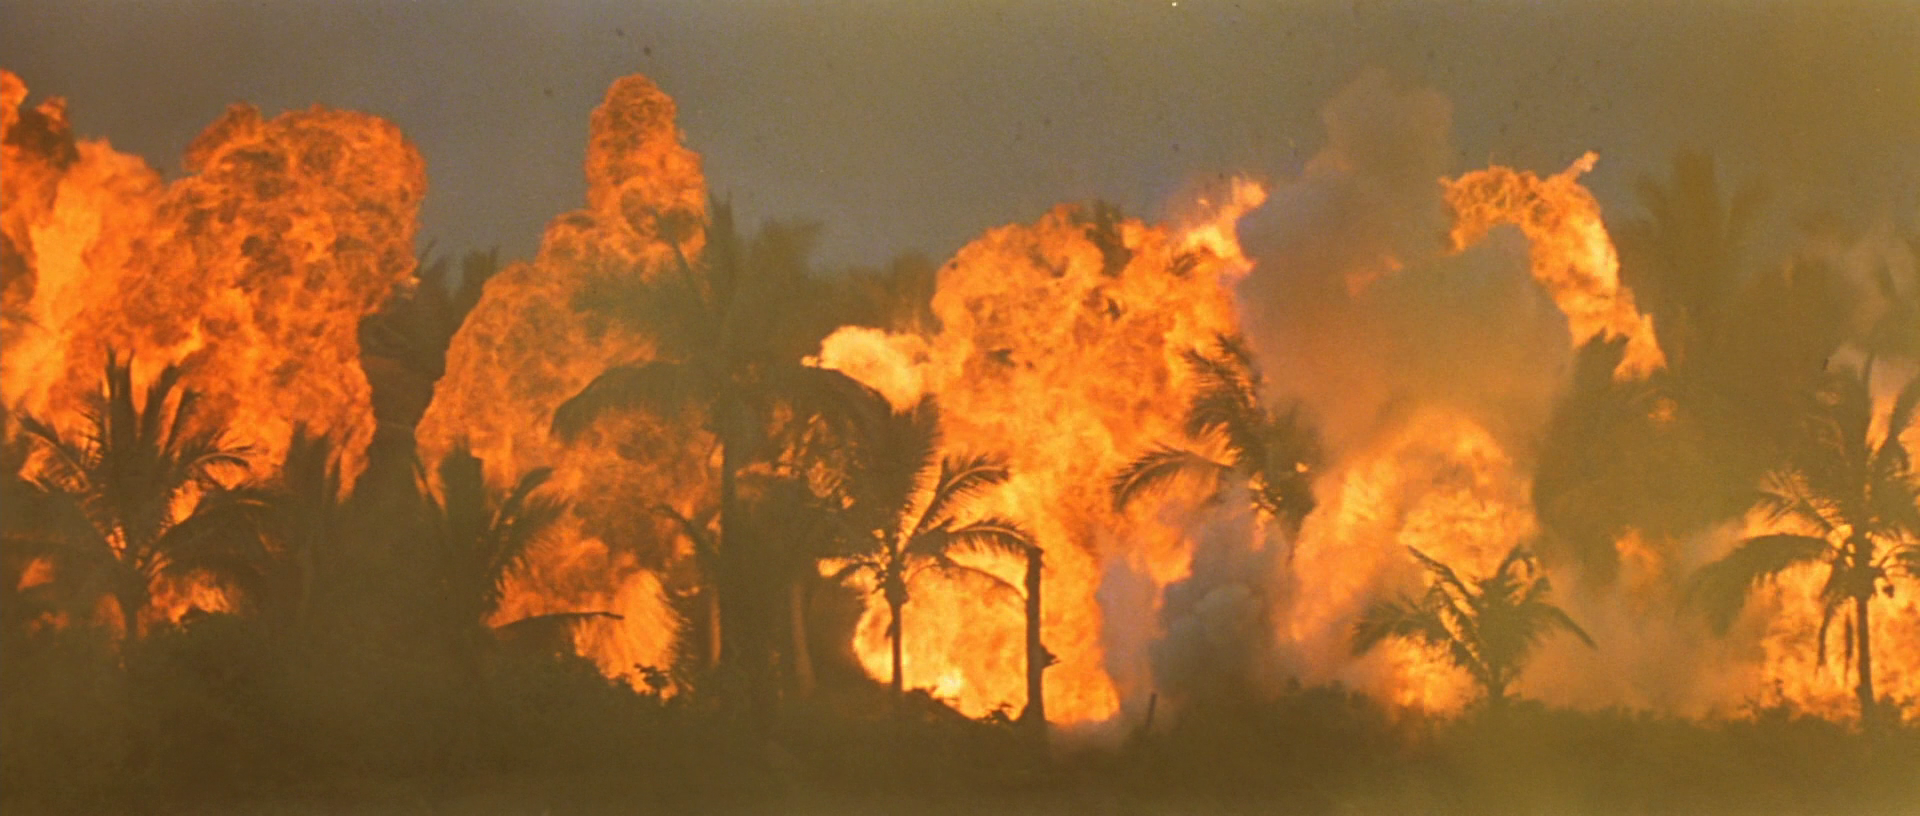 apocalypse now one shot  turns into a hellish nightmare of napalm just as jim morrison starts